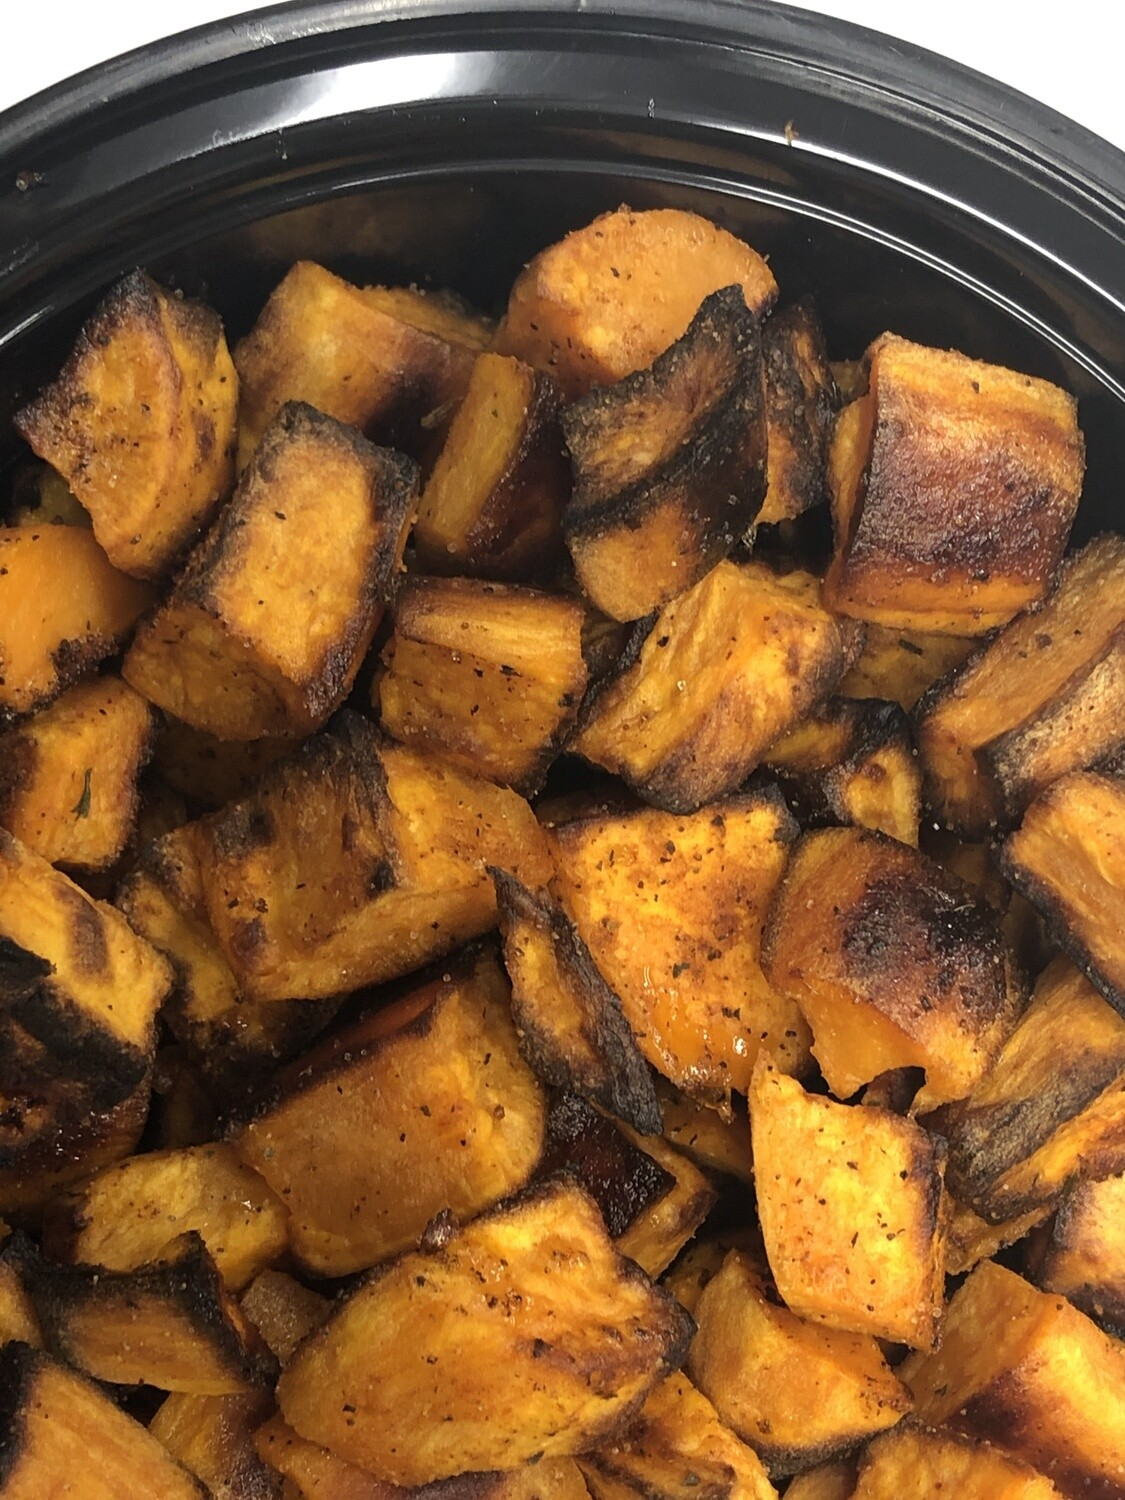 Sweet Potato Family Side - 16oz roasted sweet potatoes lightly seasoned with brown sugar and chili powder. Family of 4